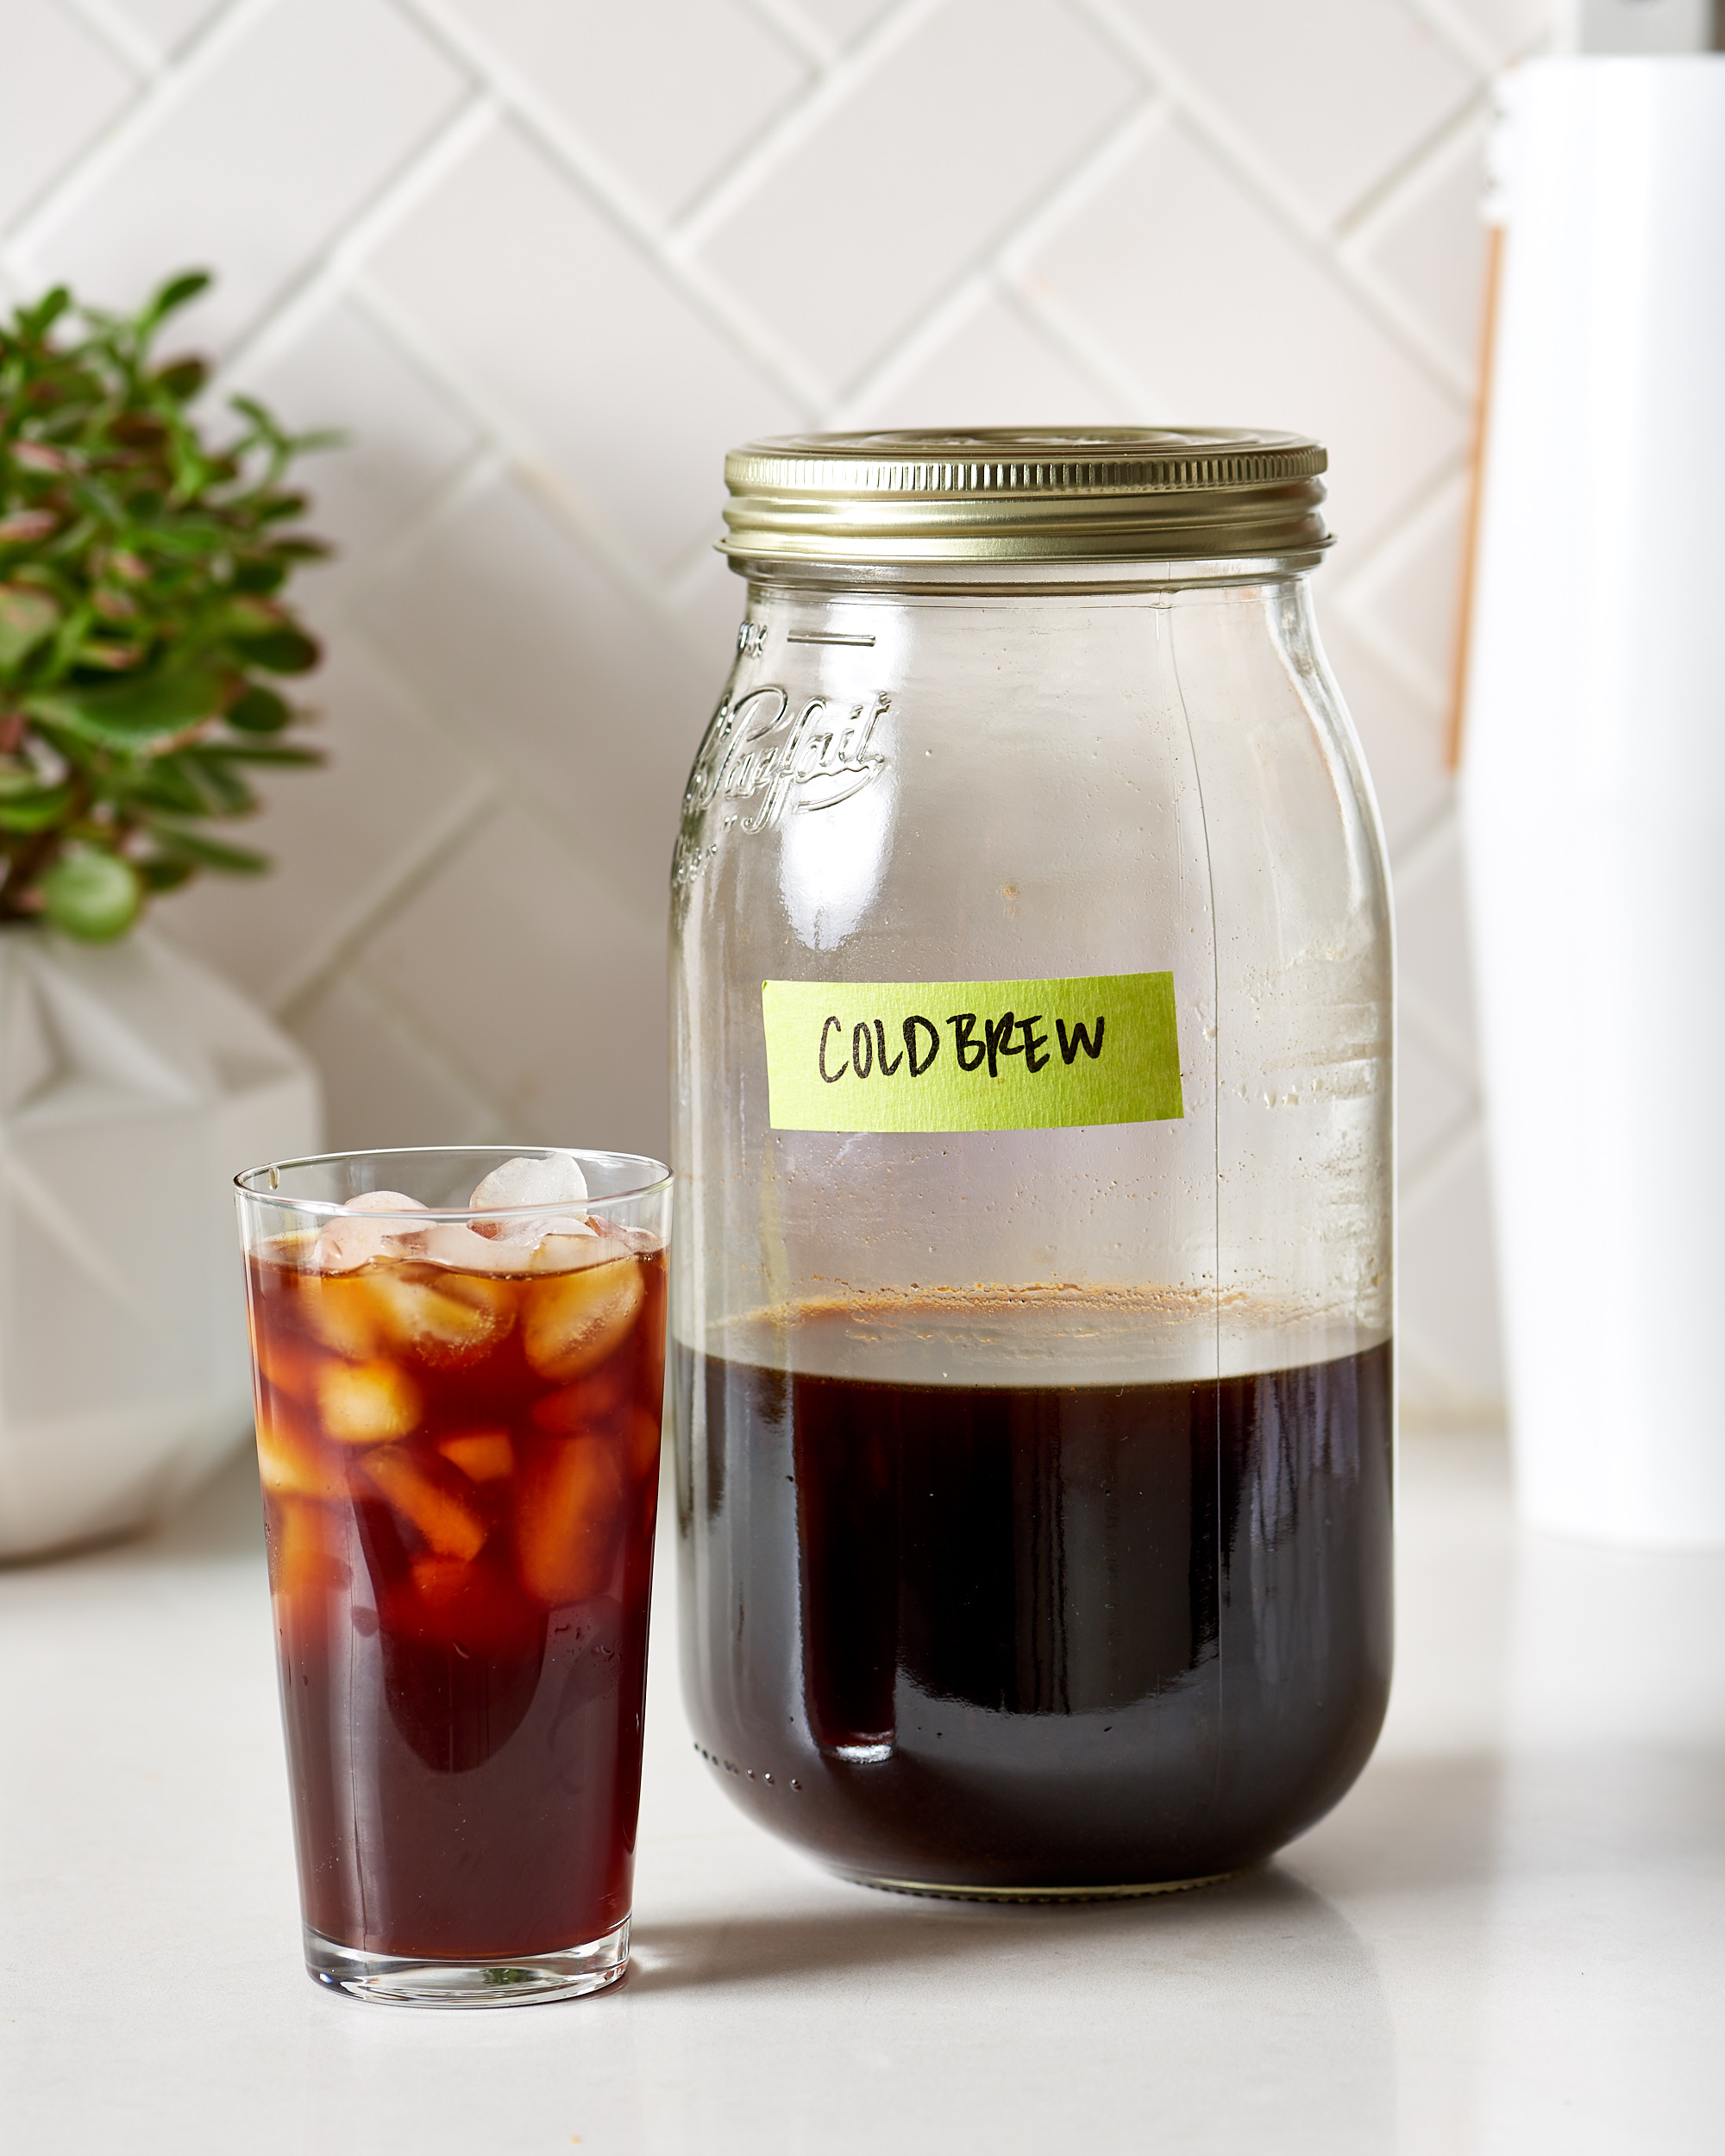 How to Make Cold Brew Coffee - Big Batch Method | Kitchn